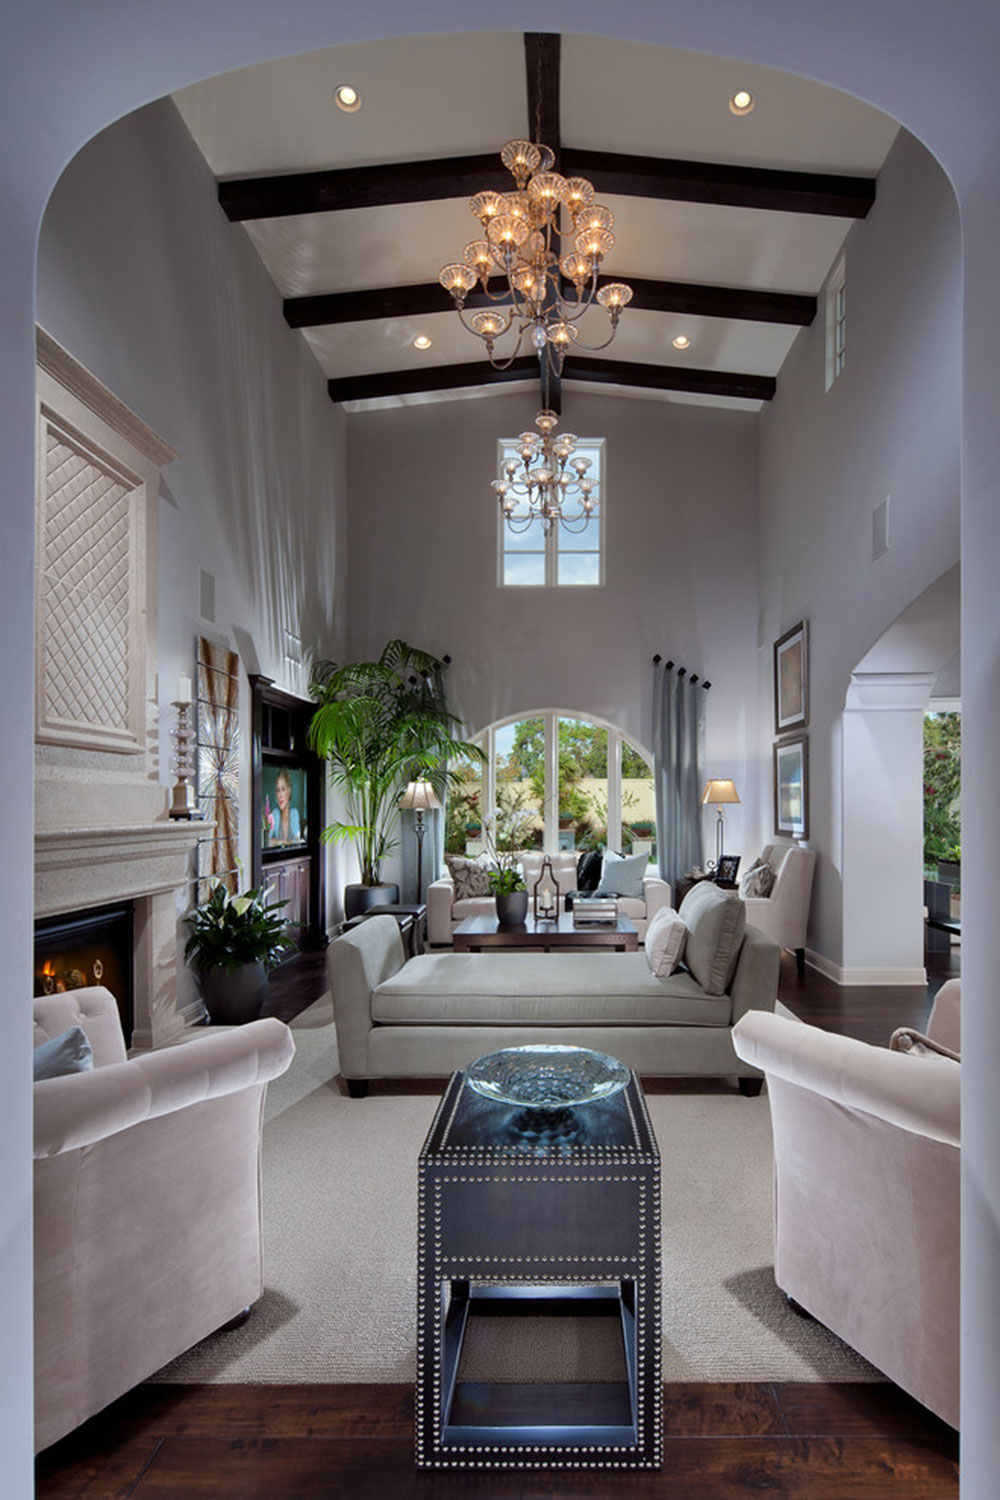 Living room focal points to look stylish and elegant1 Living room focal points to look stylish and elegant